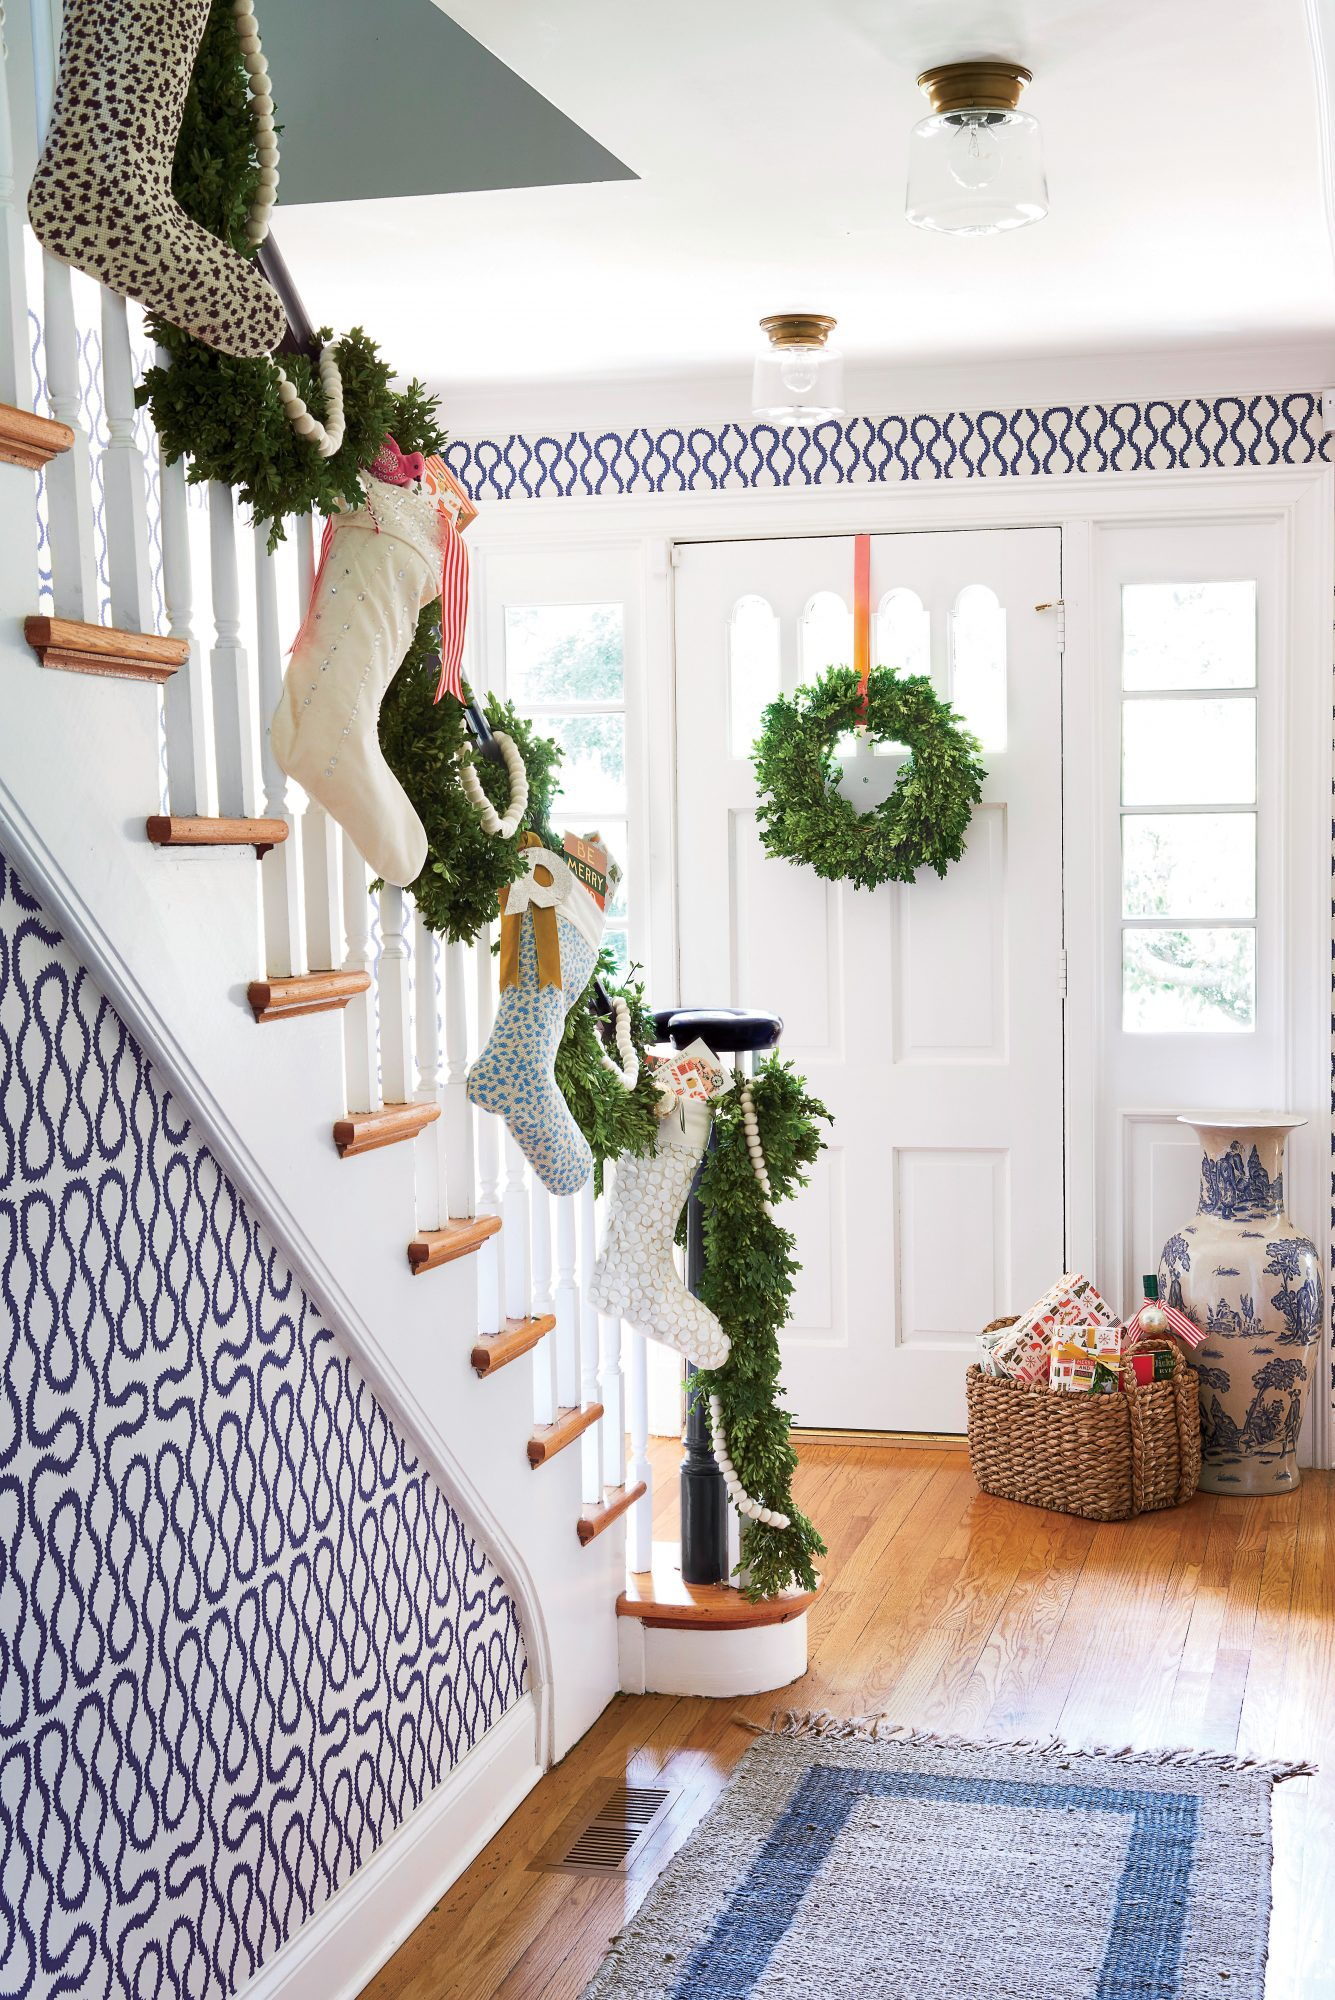 Stockings on the Stairs